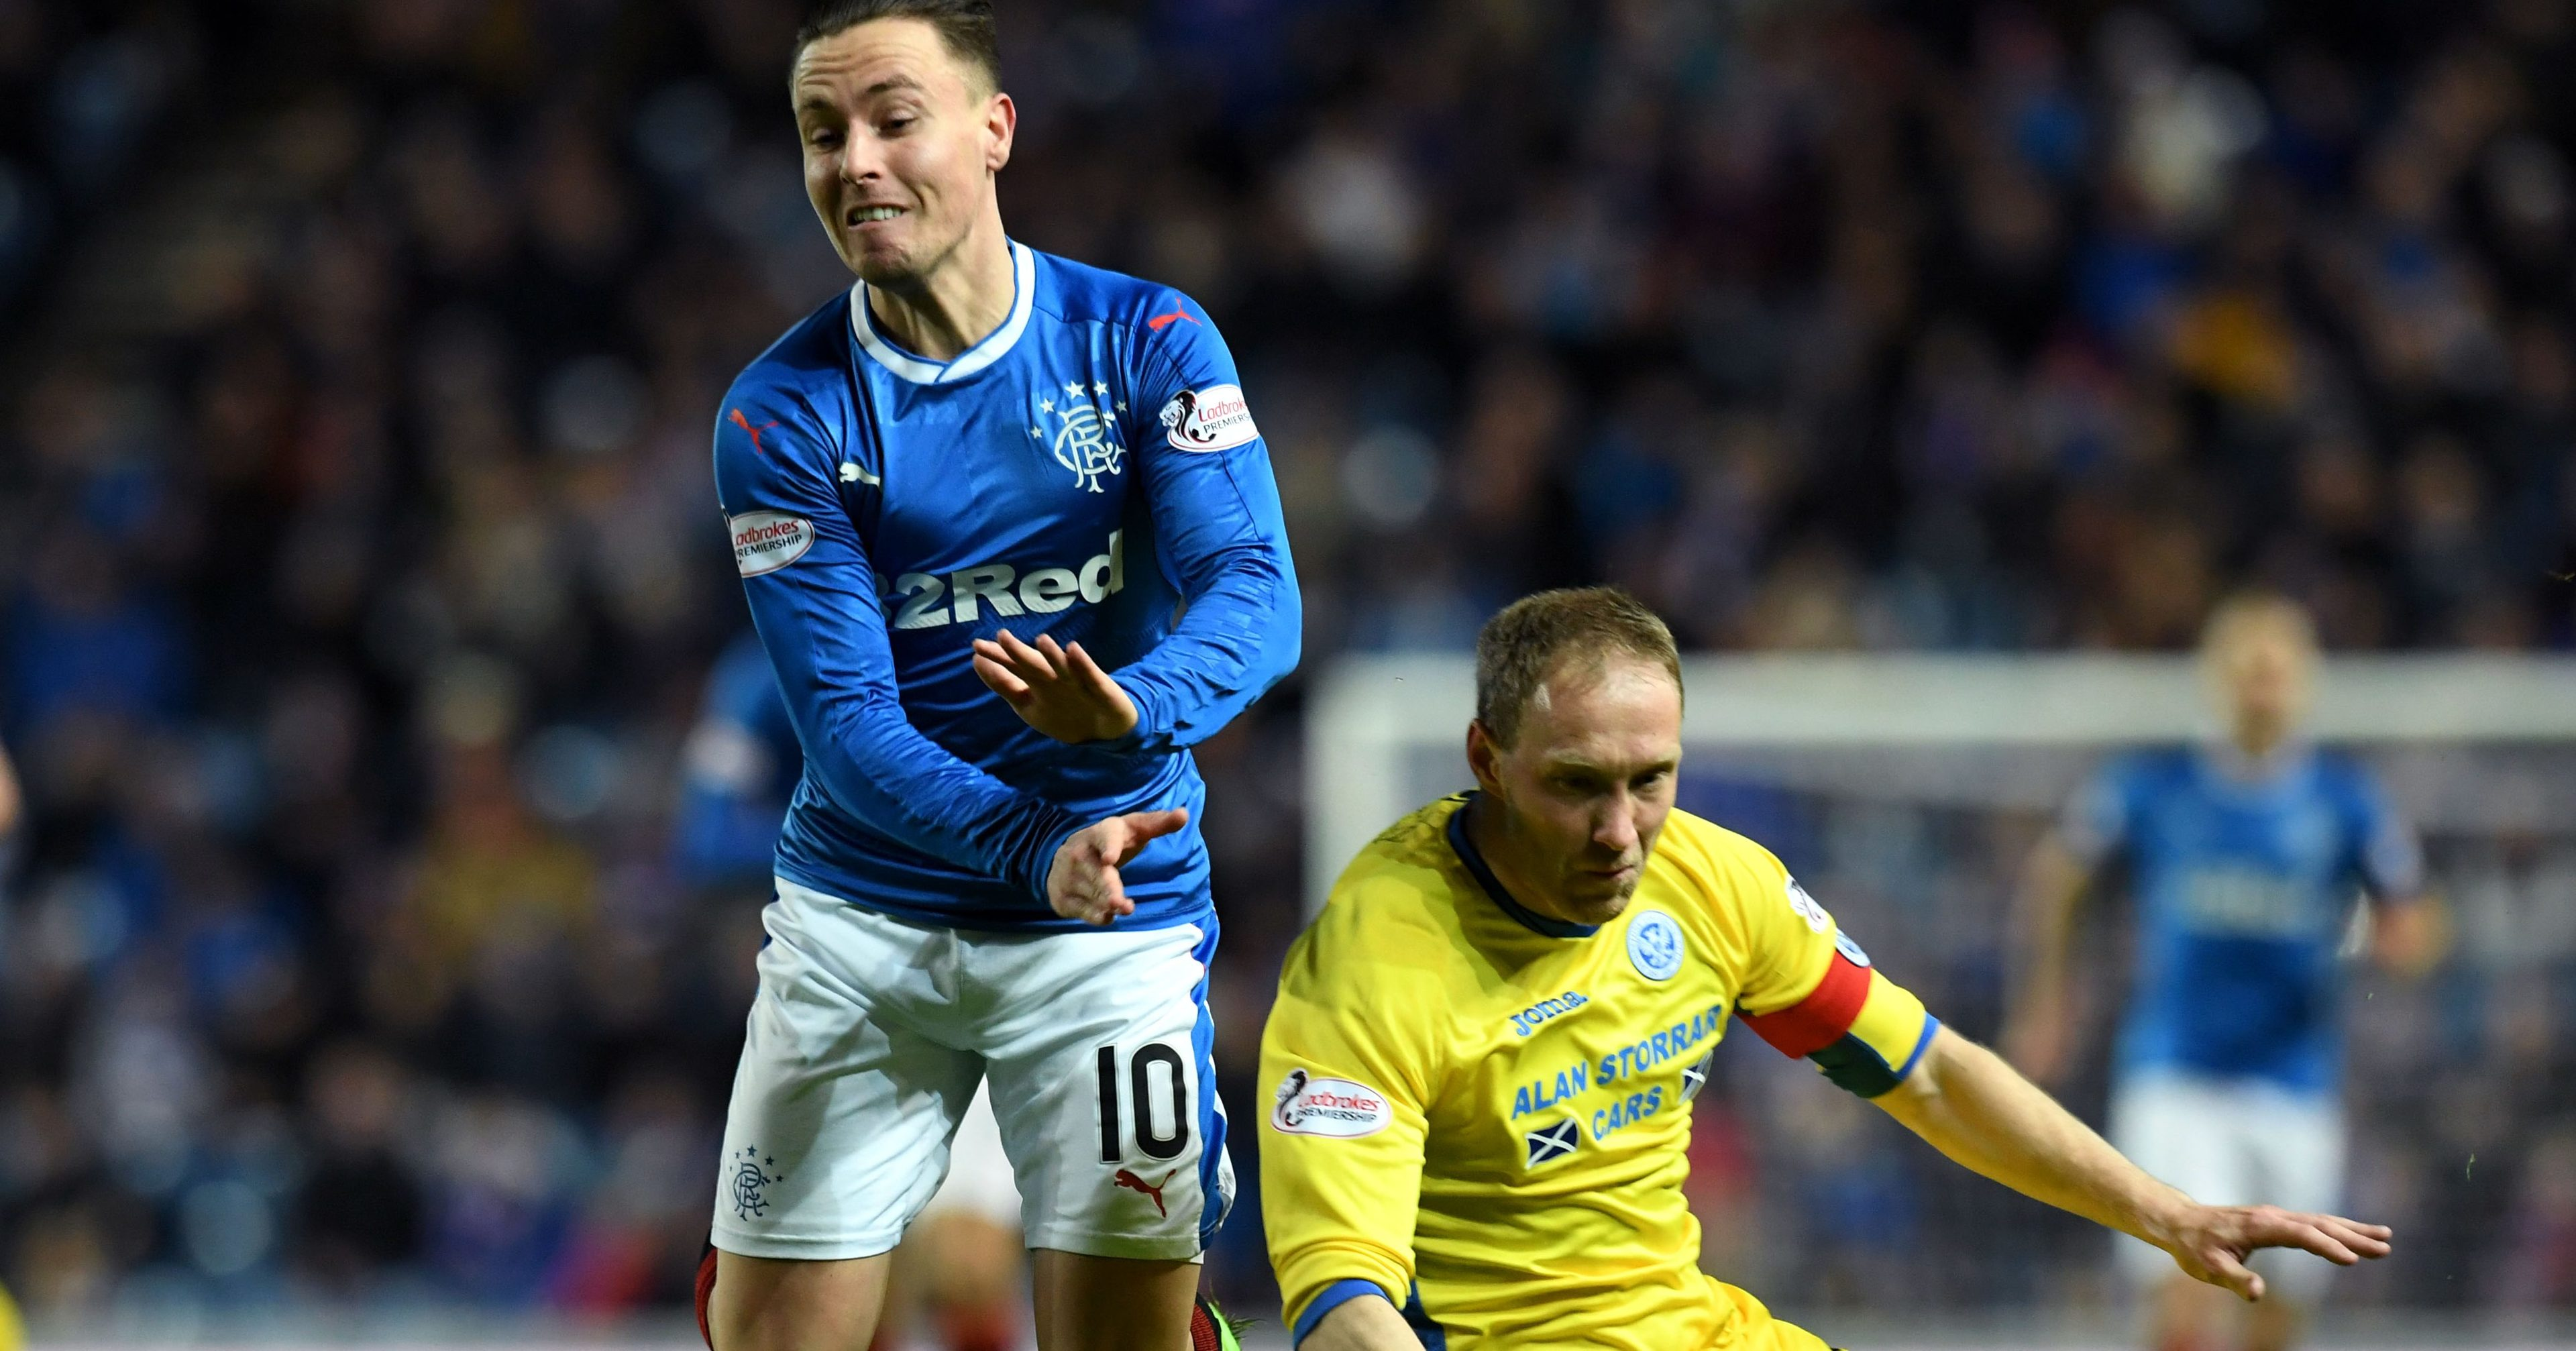 Action from the game at Ibrox.